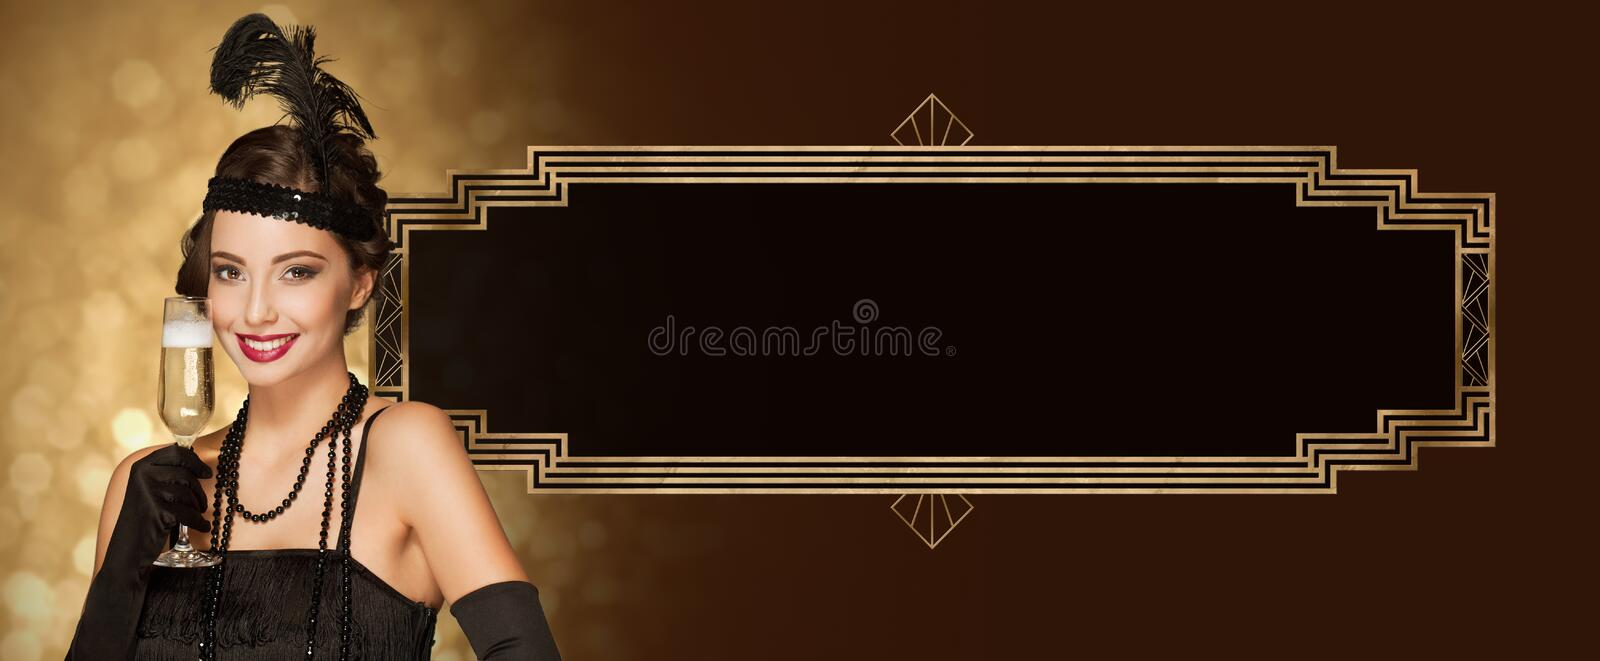 Art deco style party girl. Art deco style new year party girl with golden decorations royalty free stock photos